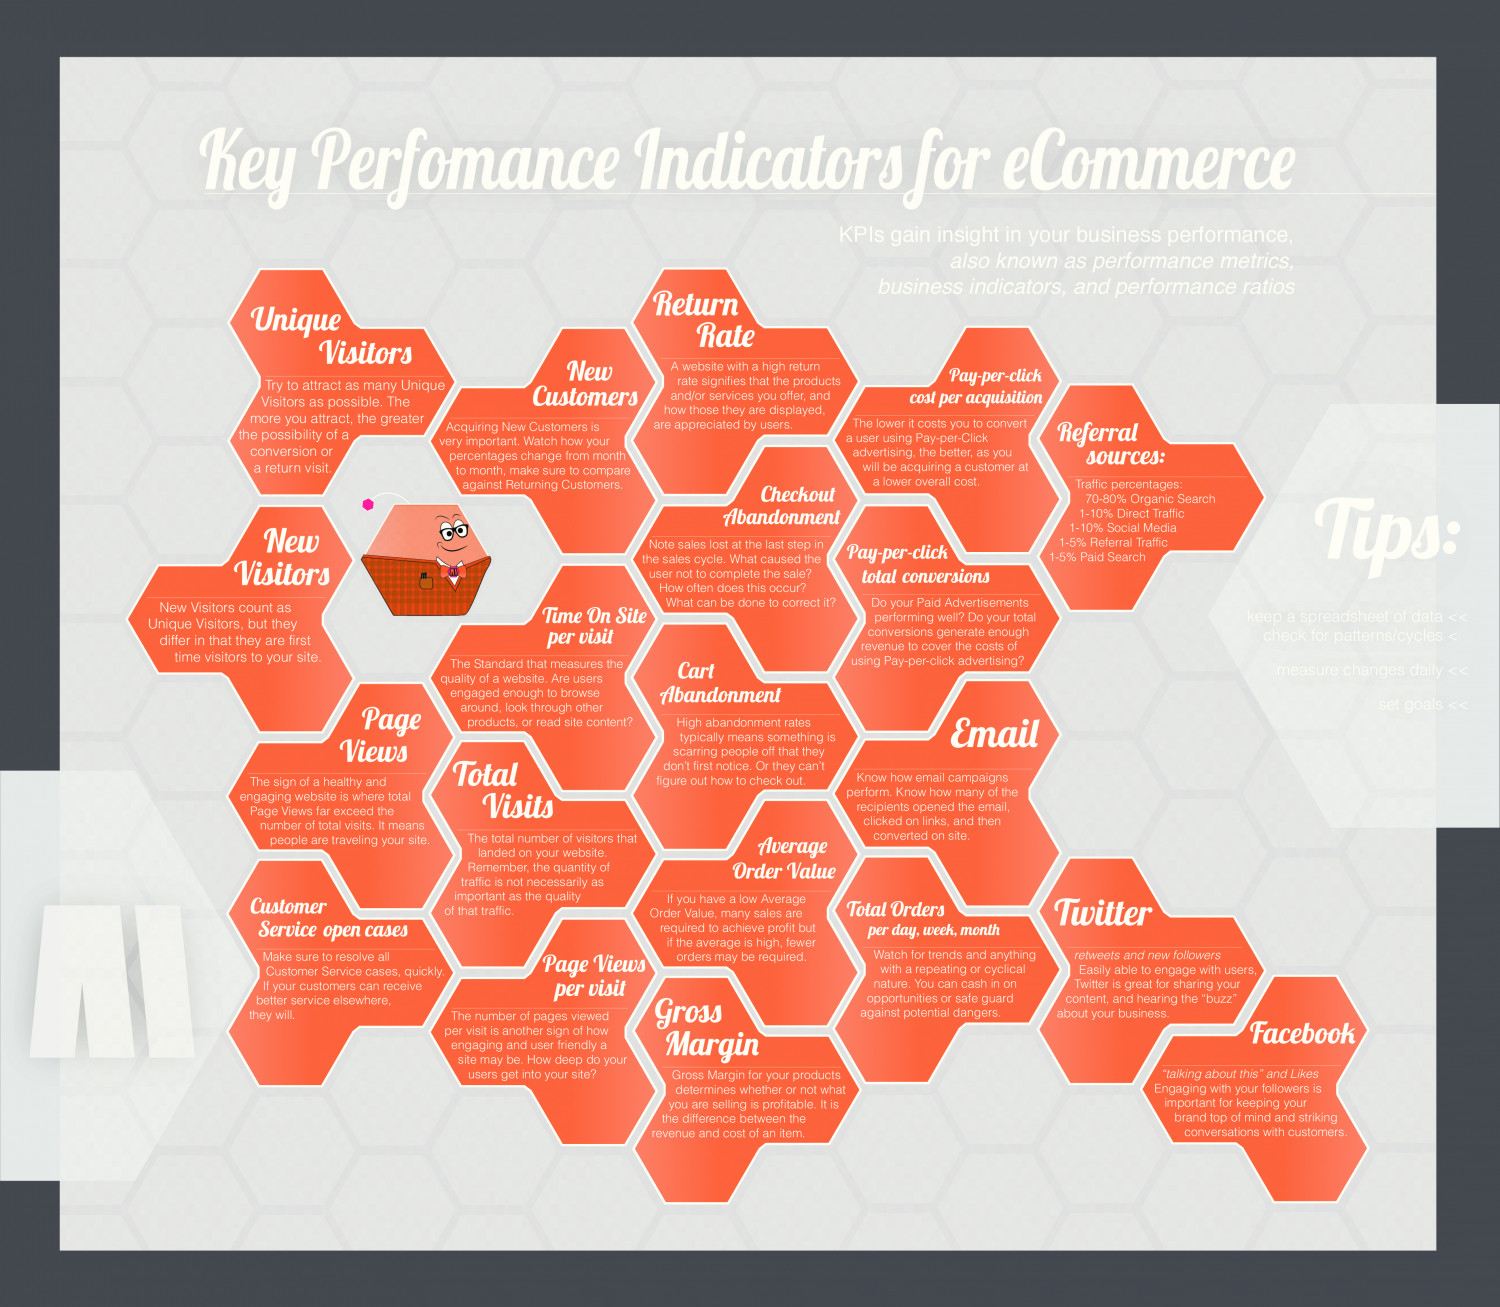 Key Performance Indicators | eCommerce (+Magento) Infographic